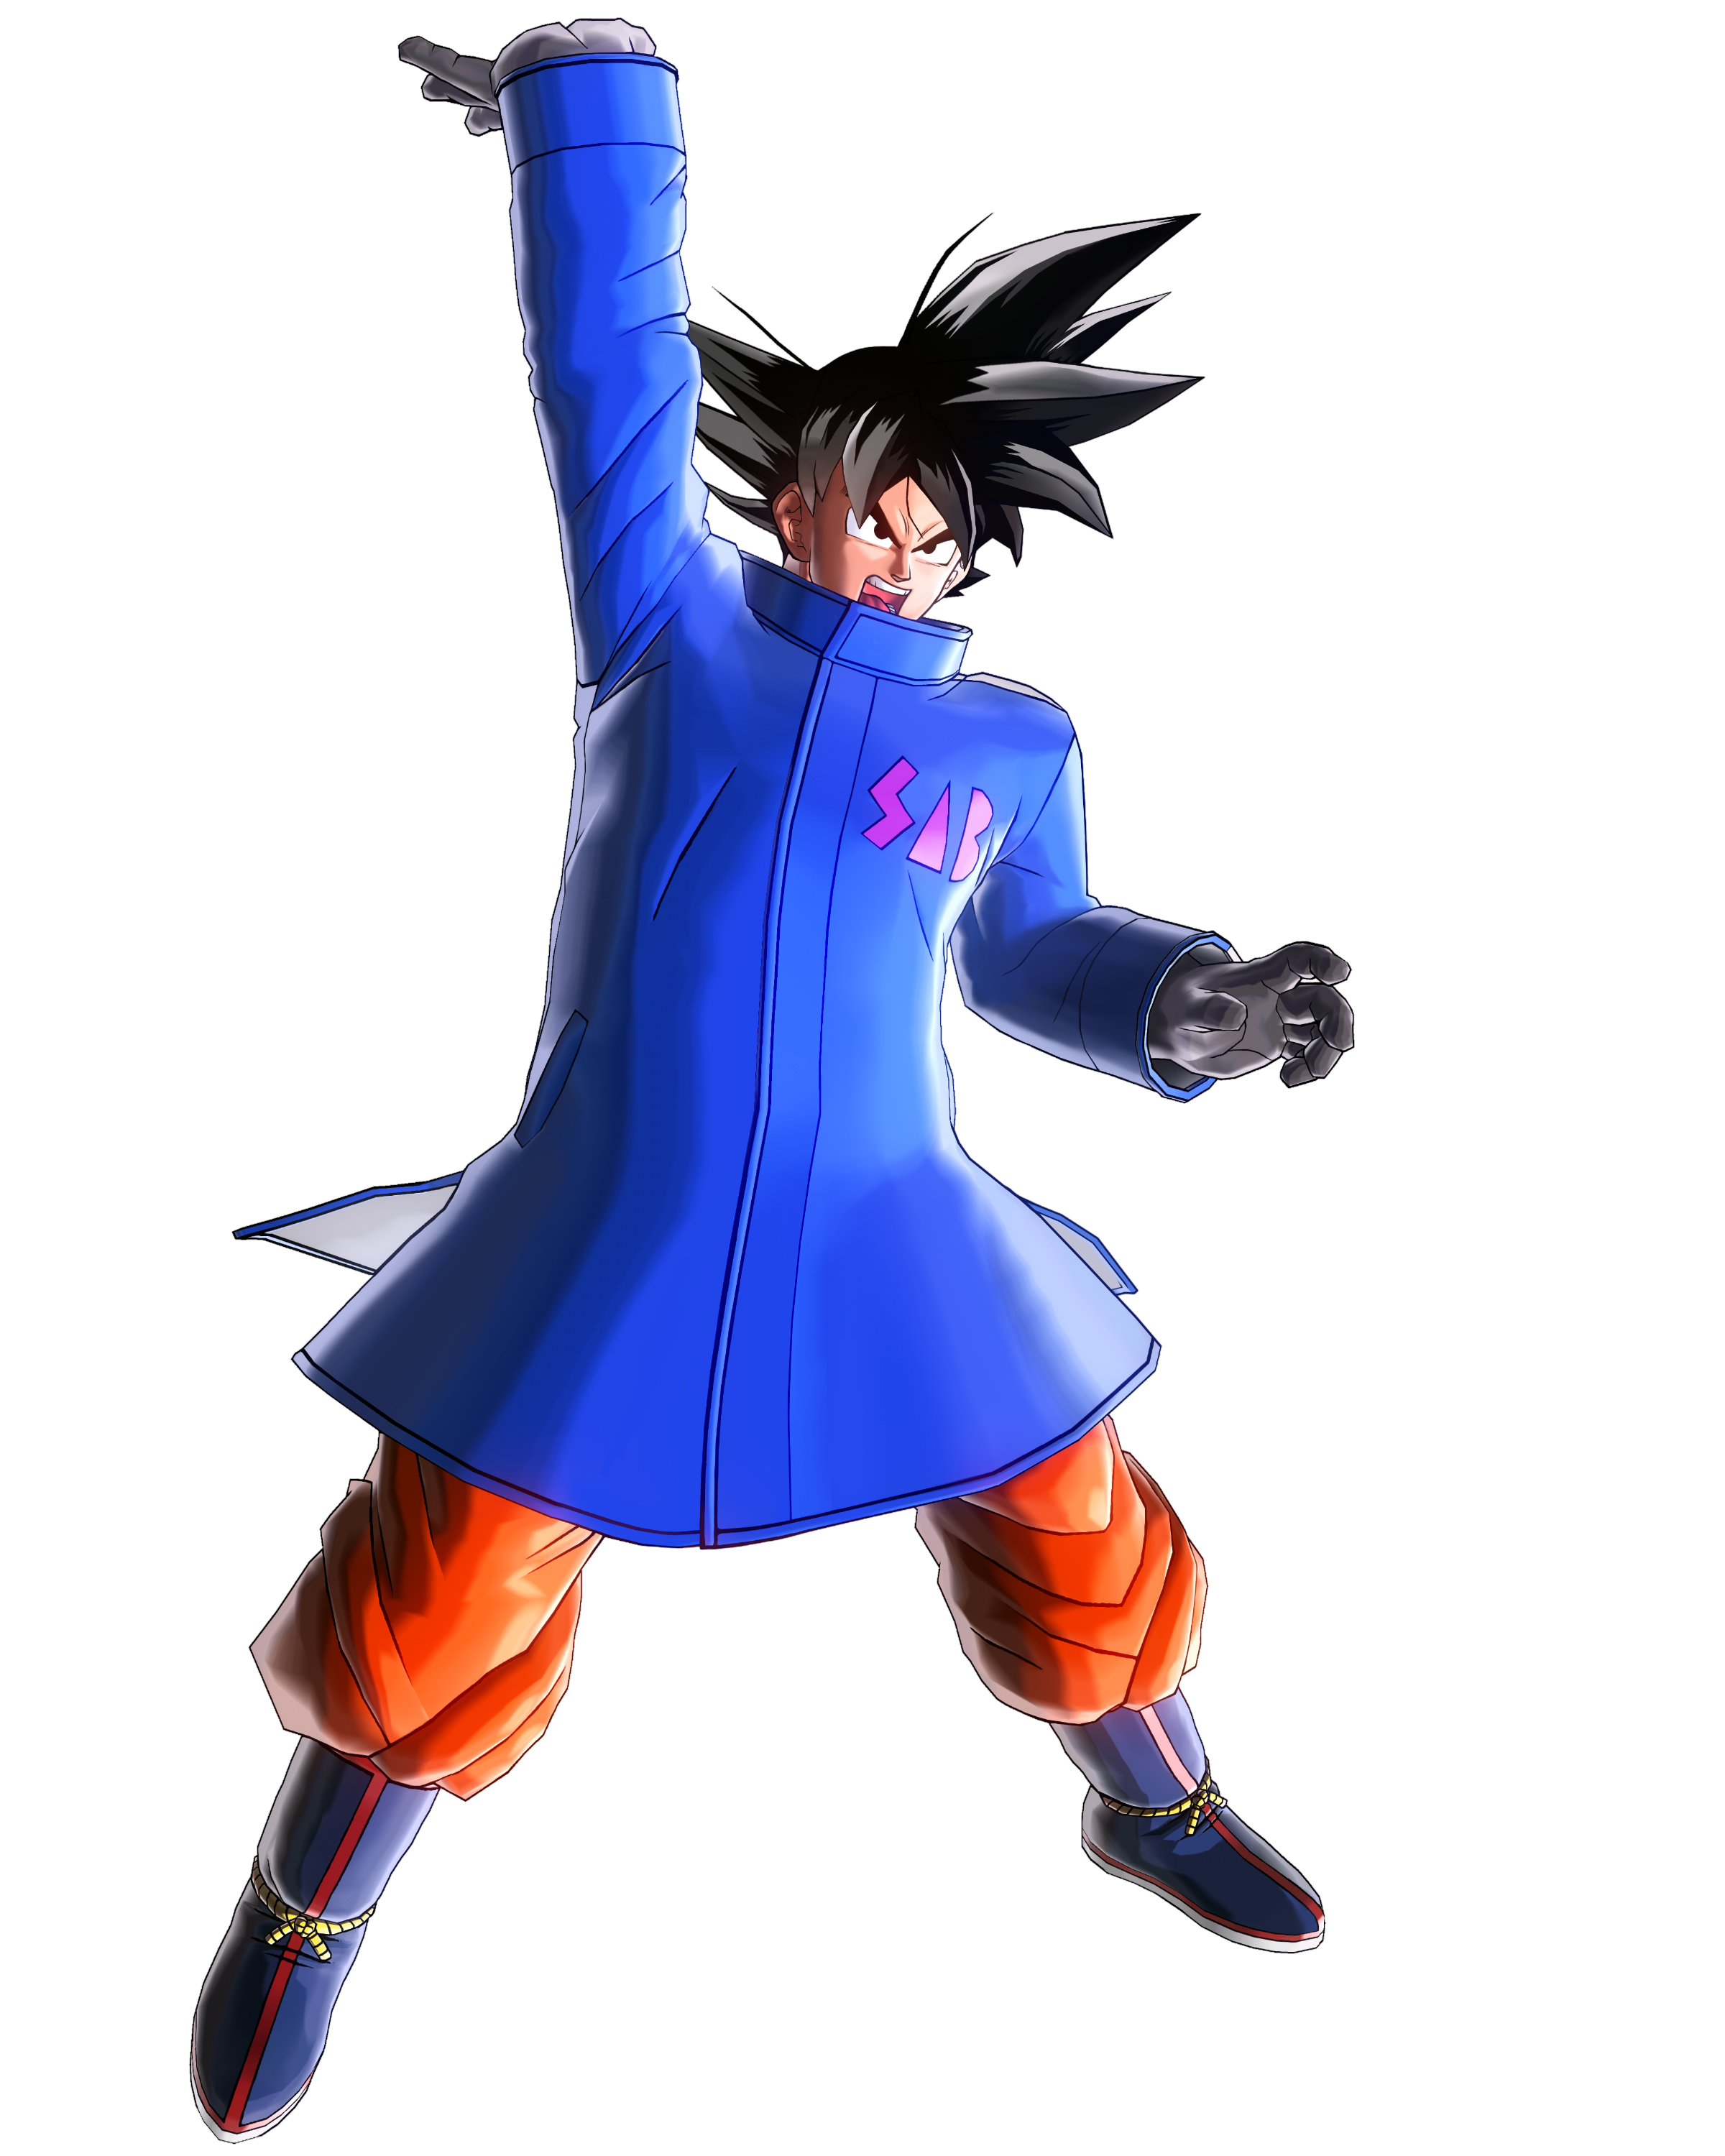 Goku Snow Suit Render (Dragon Ball Xenoverse 2).png